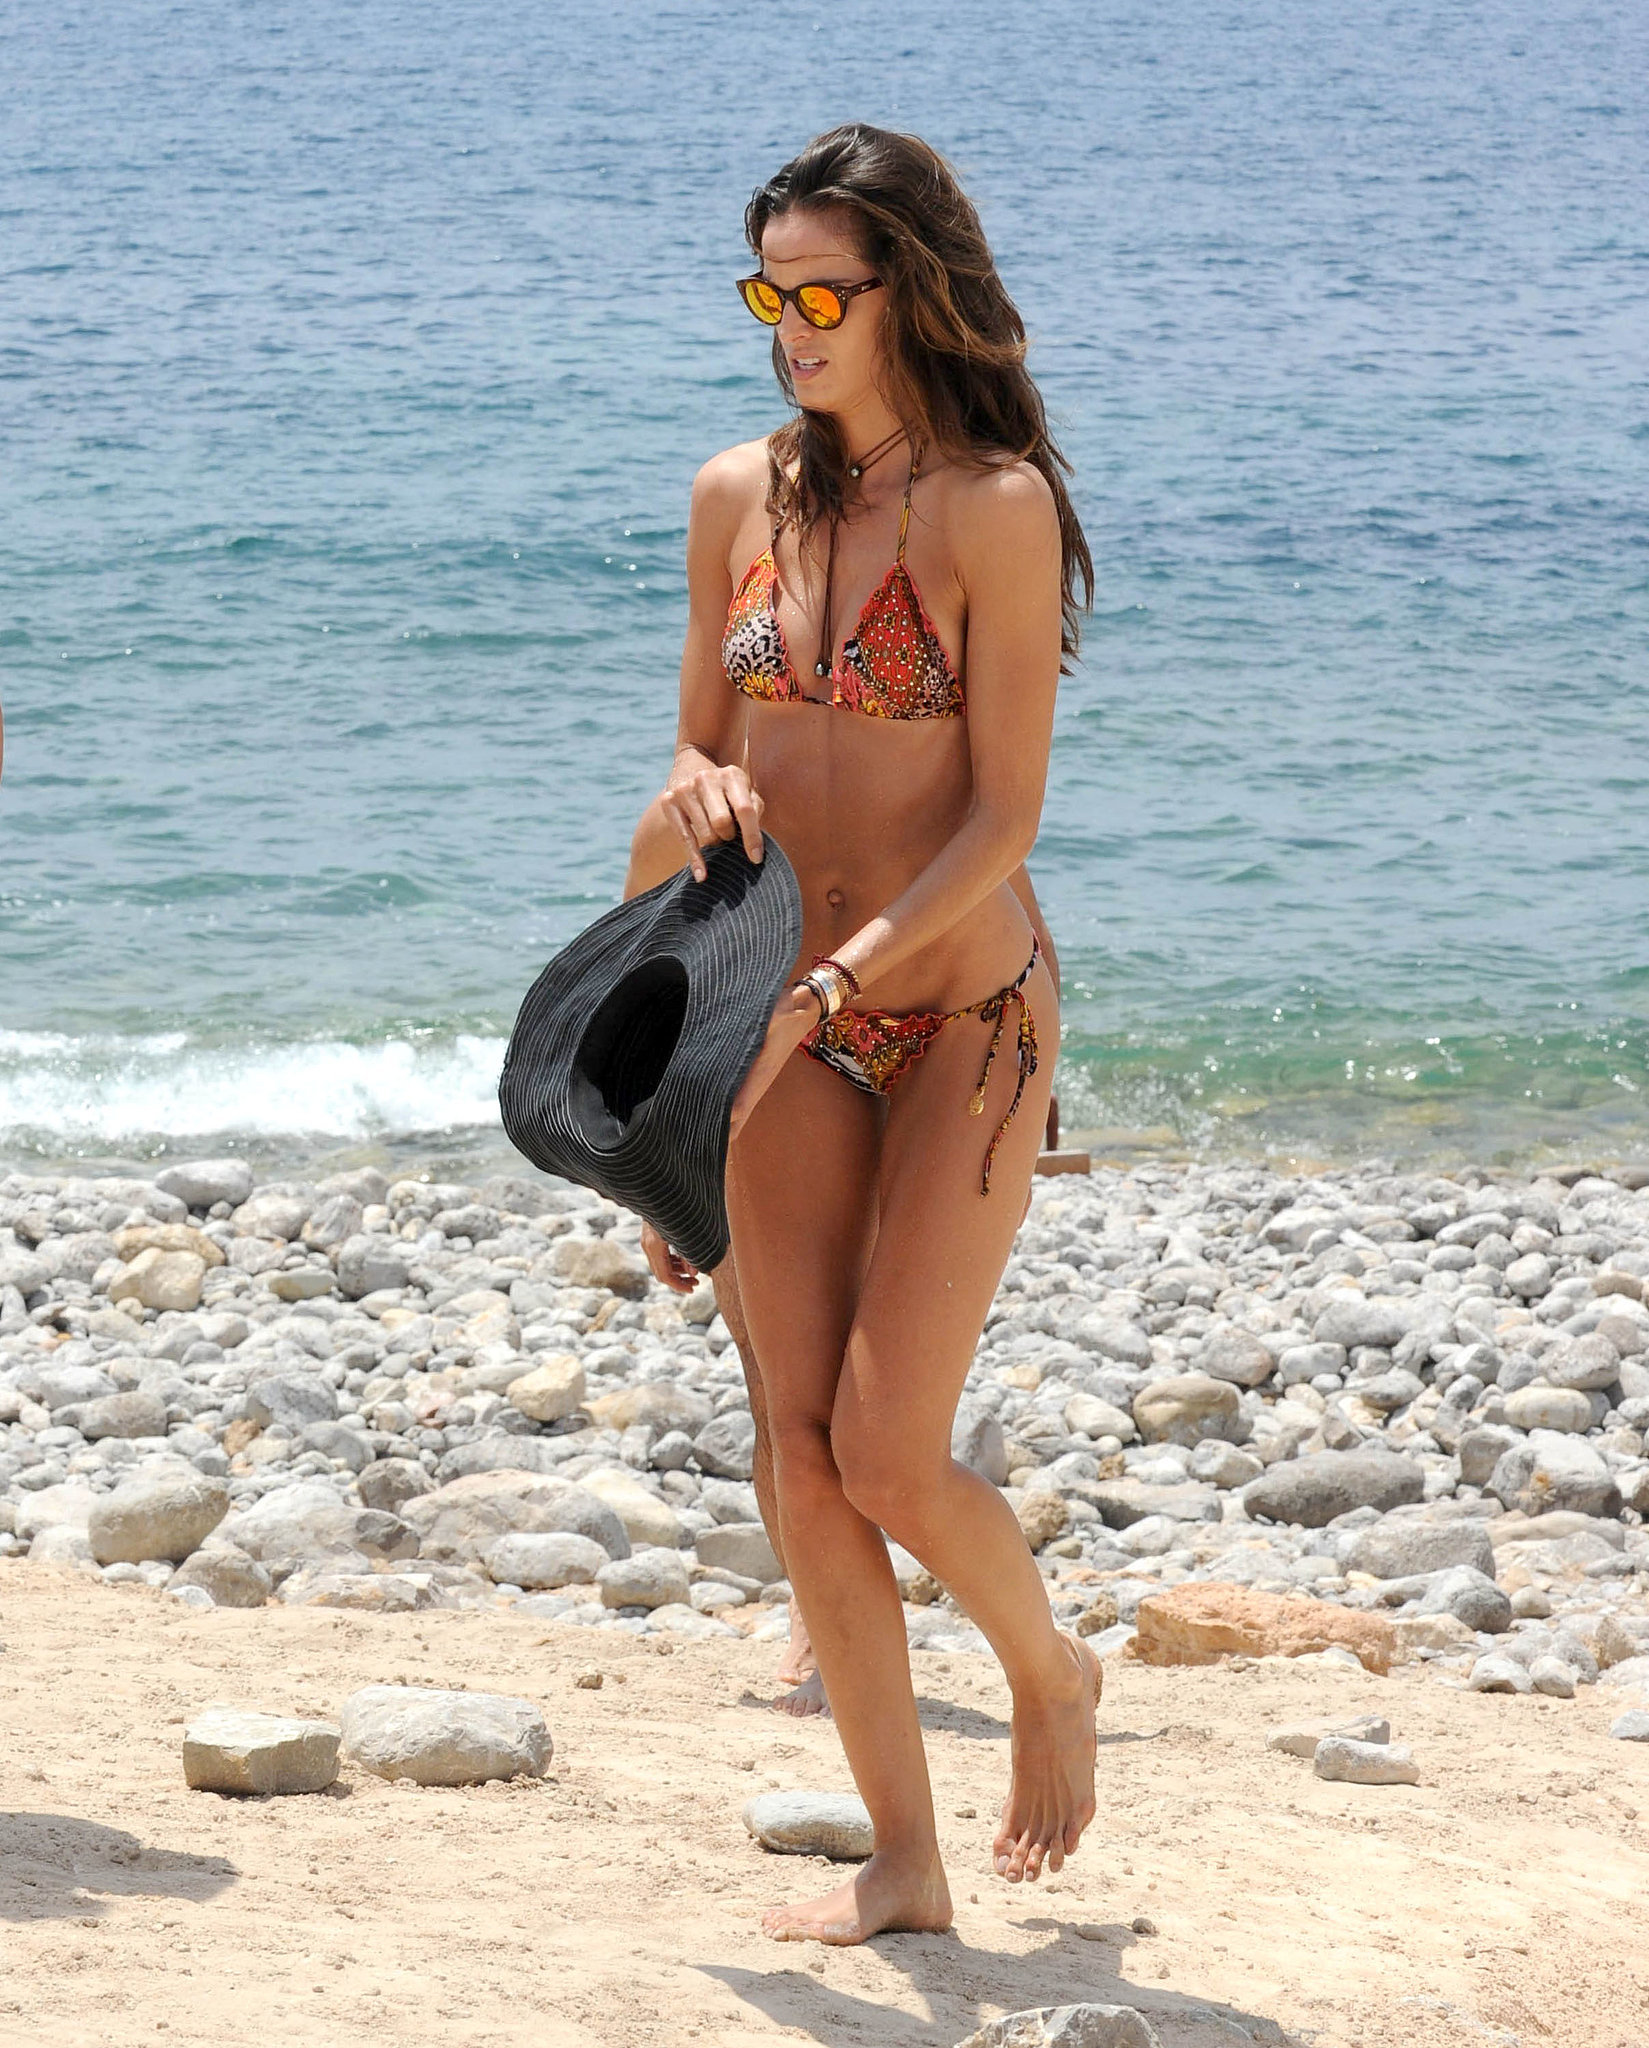 With her slim body and Regular brown hairtype without bra (cup size 33B) on the beach in bikini